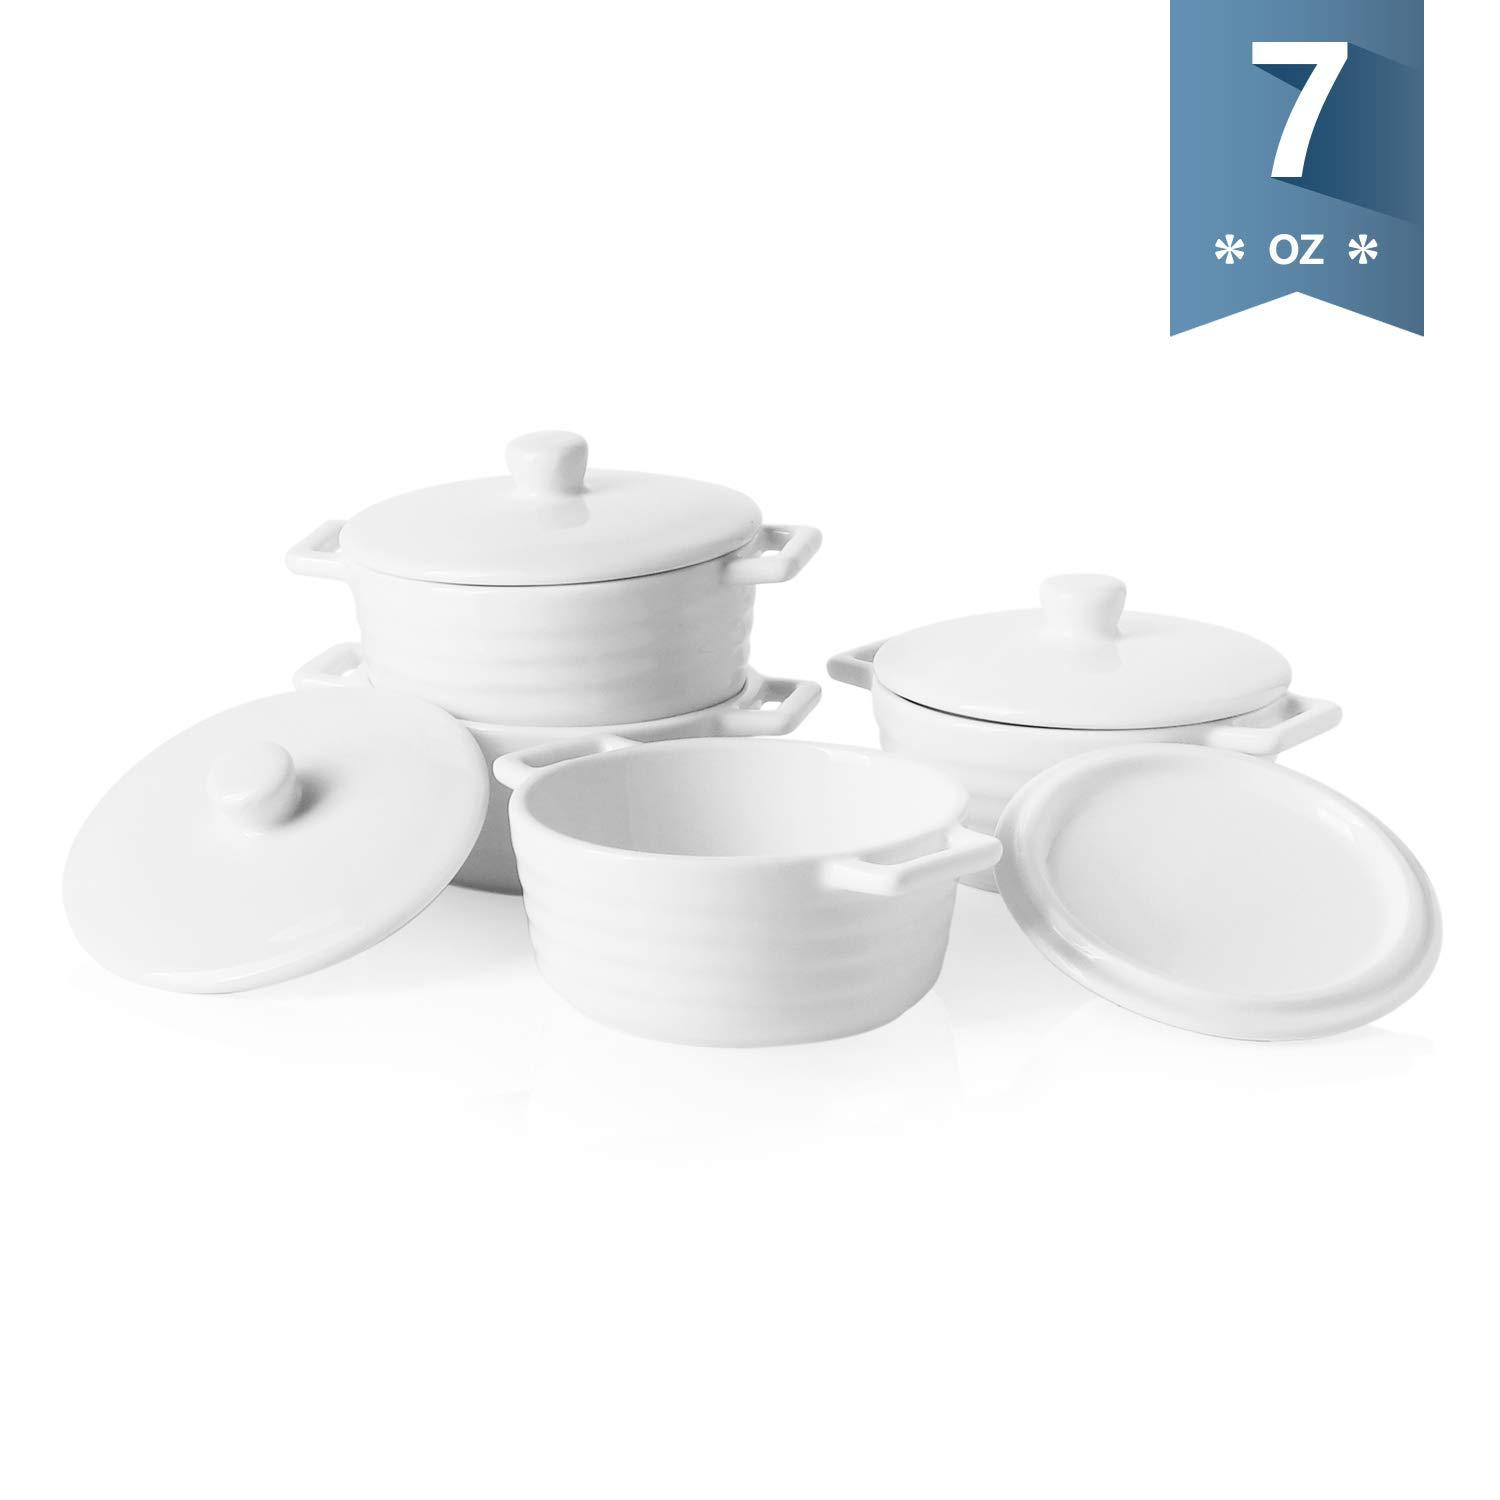 Sweese 510.101 Porcelain Ramekins, 7 Ounce Round Mini Casserole Dish with Lid, Set of 4, White by Sweese